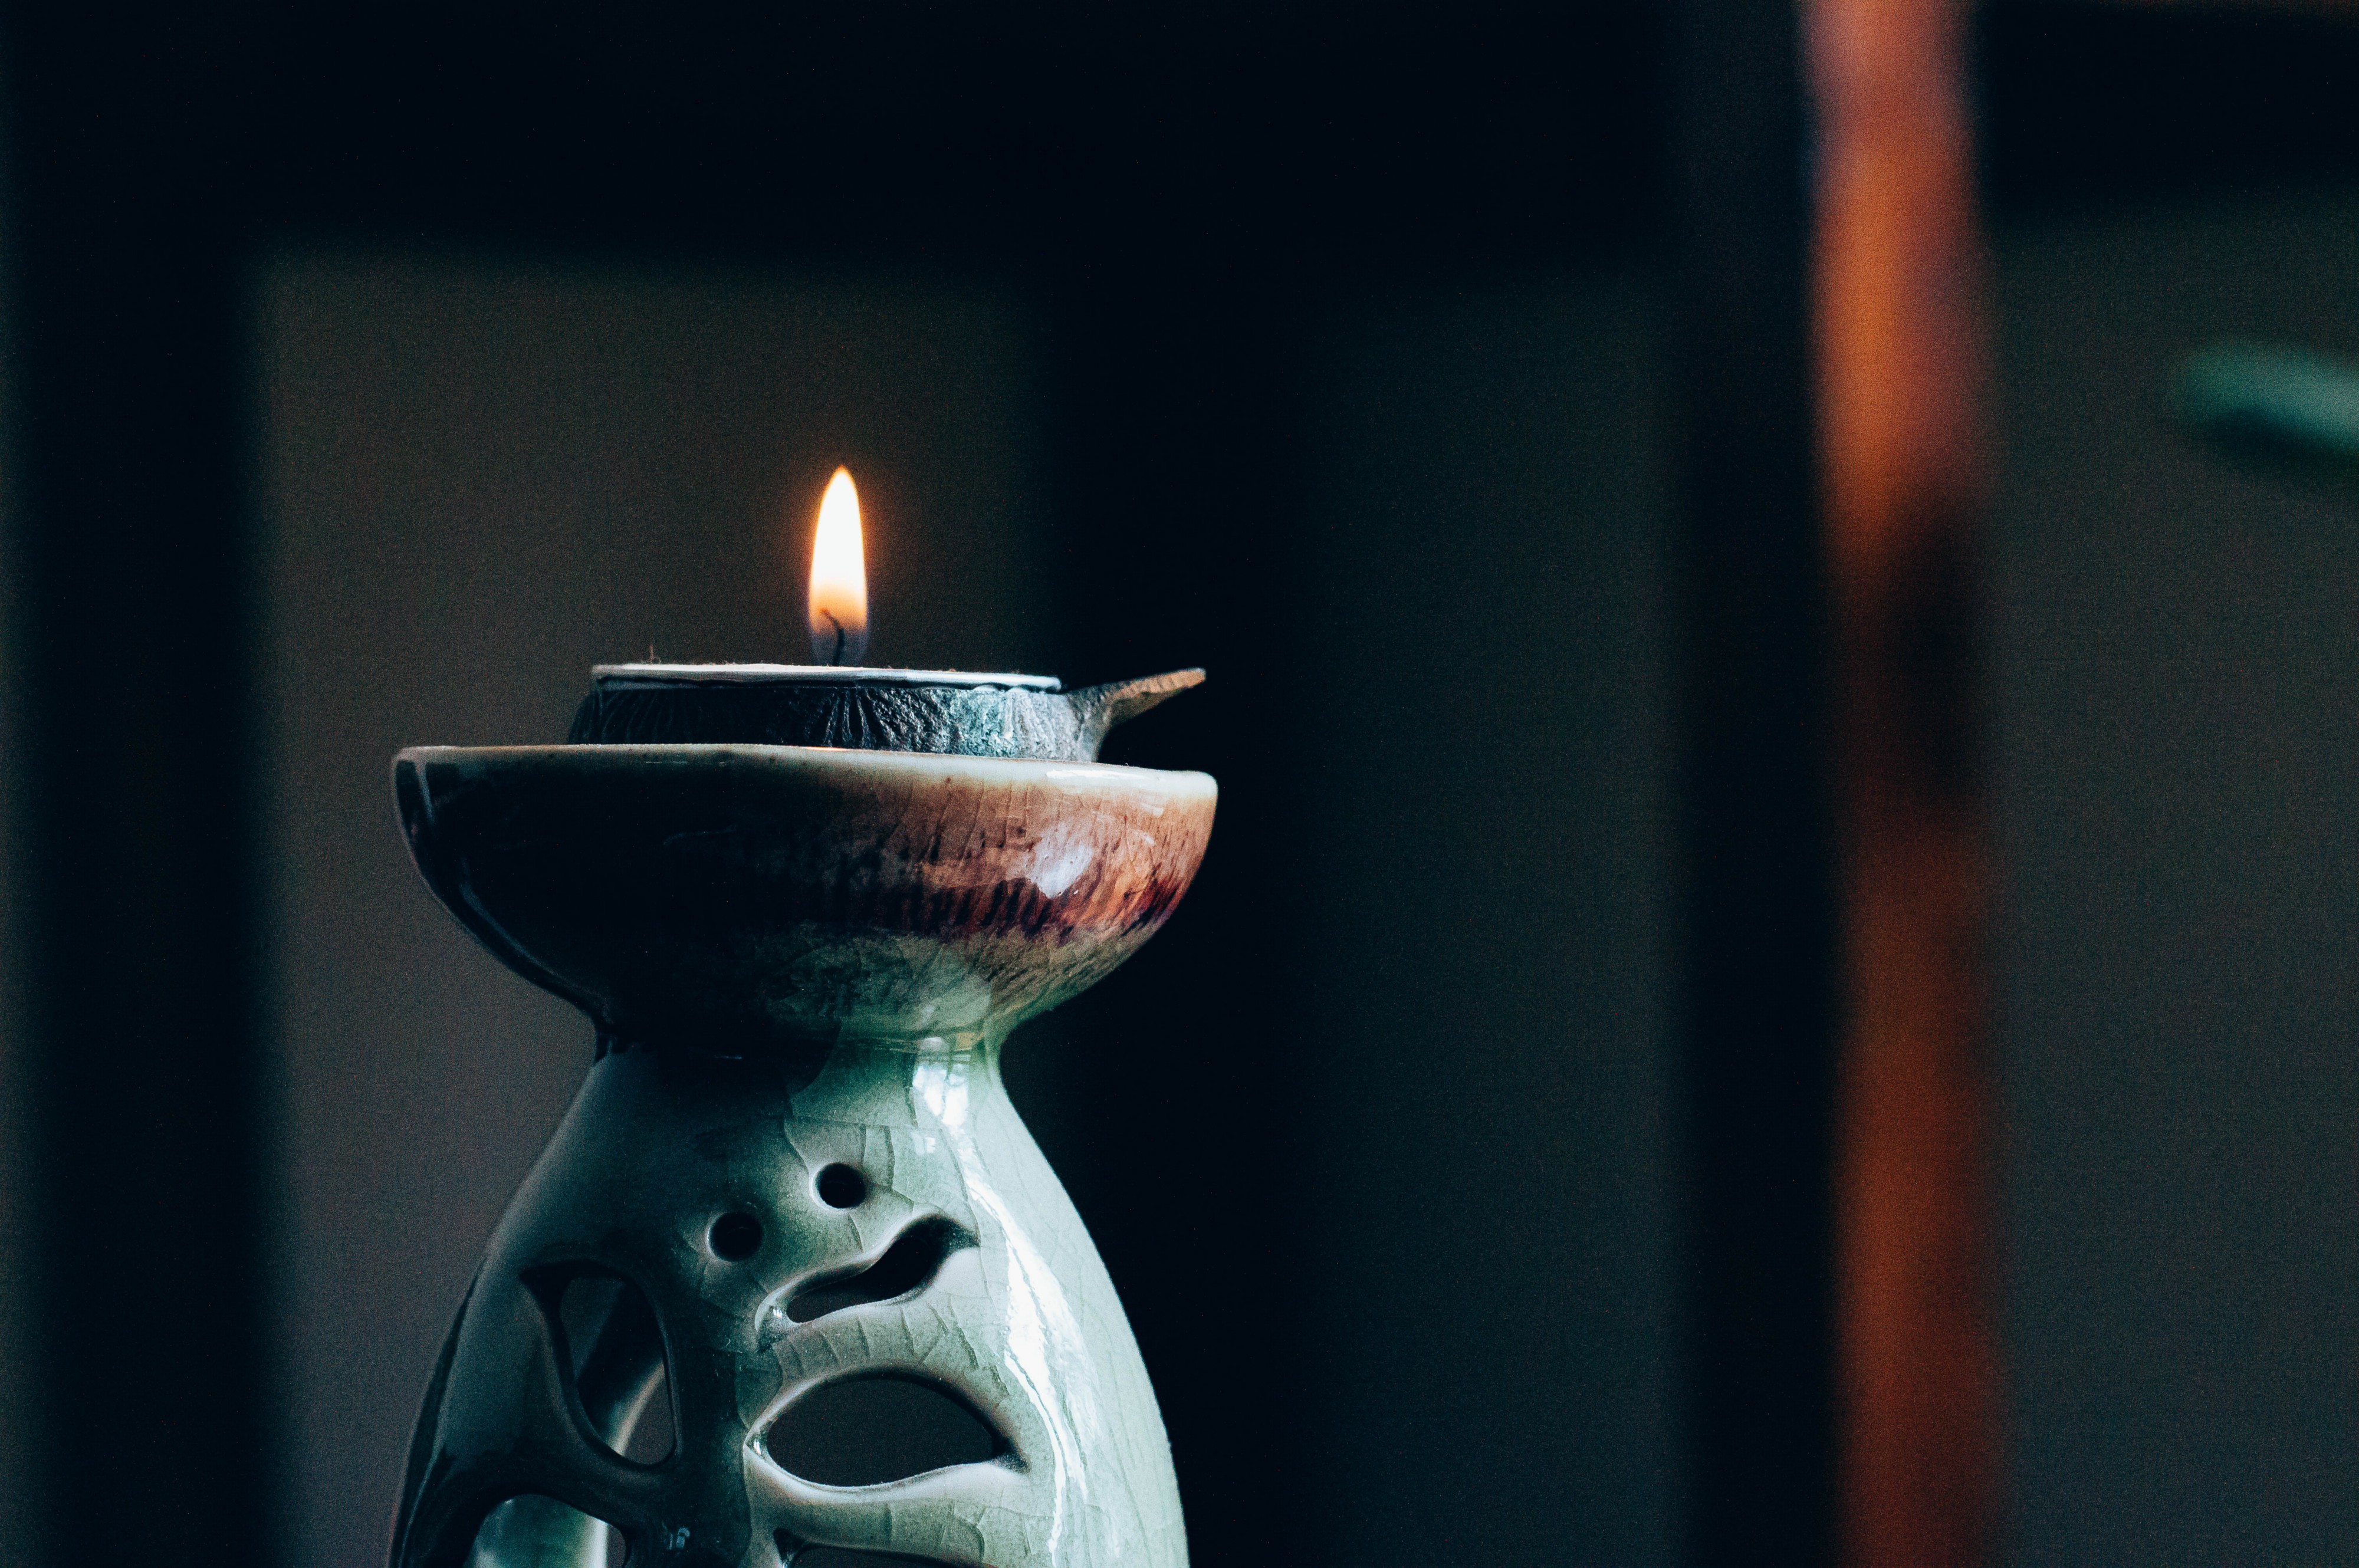 lit candle in a small ceramic bowl on top of a beautiful greenish grey art sculpture with engravings of birds and leaves and circles.